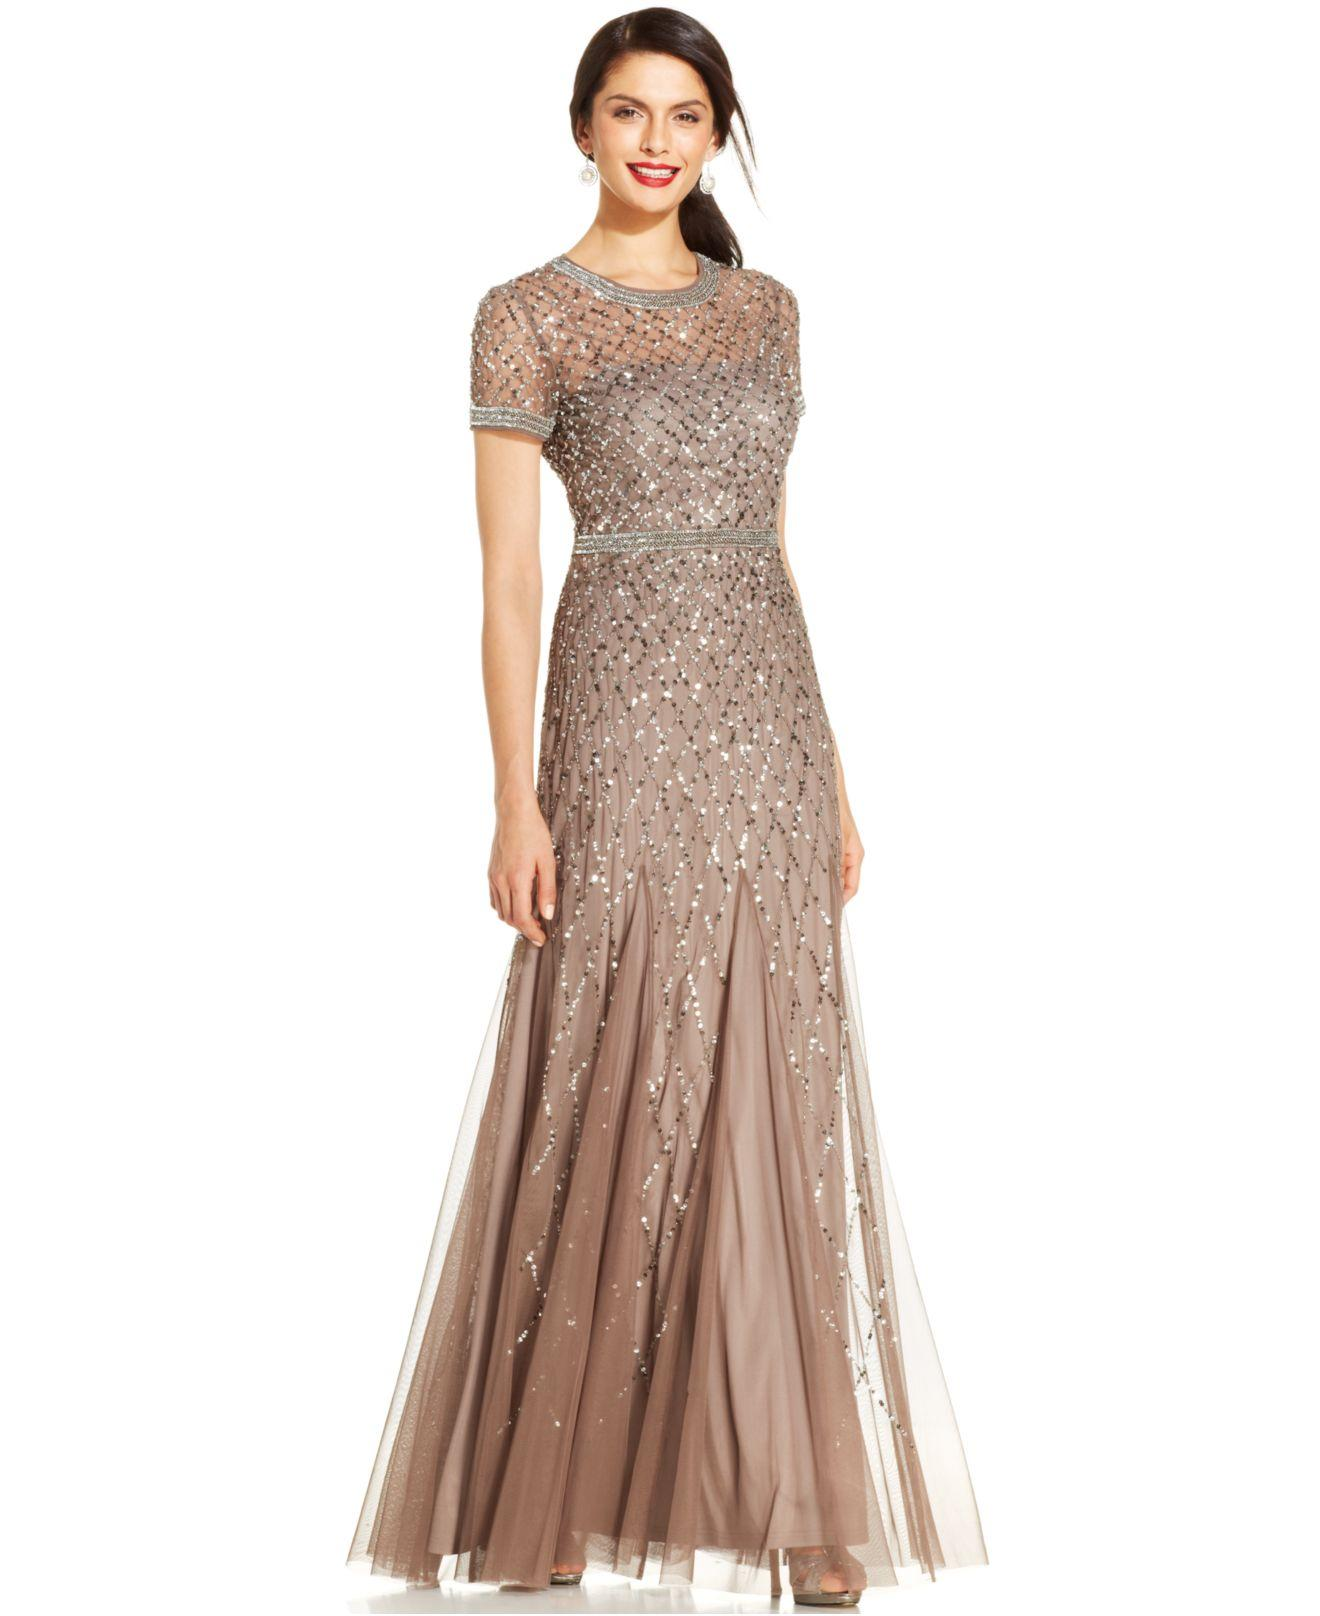 Lyst  Adrianna Papell Shortsleeve Embellished Pleated Gown in Brown